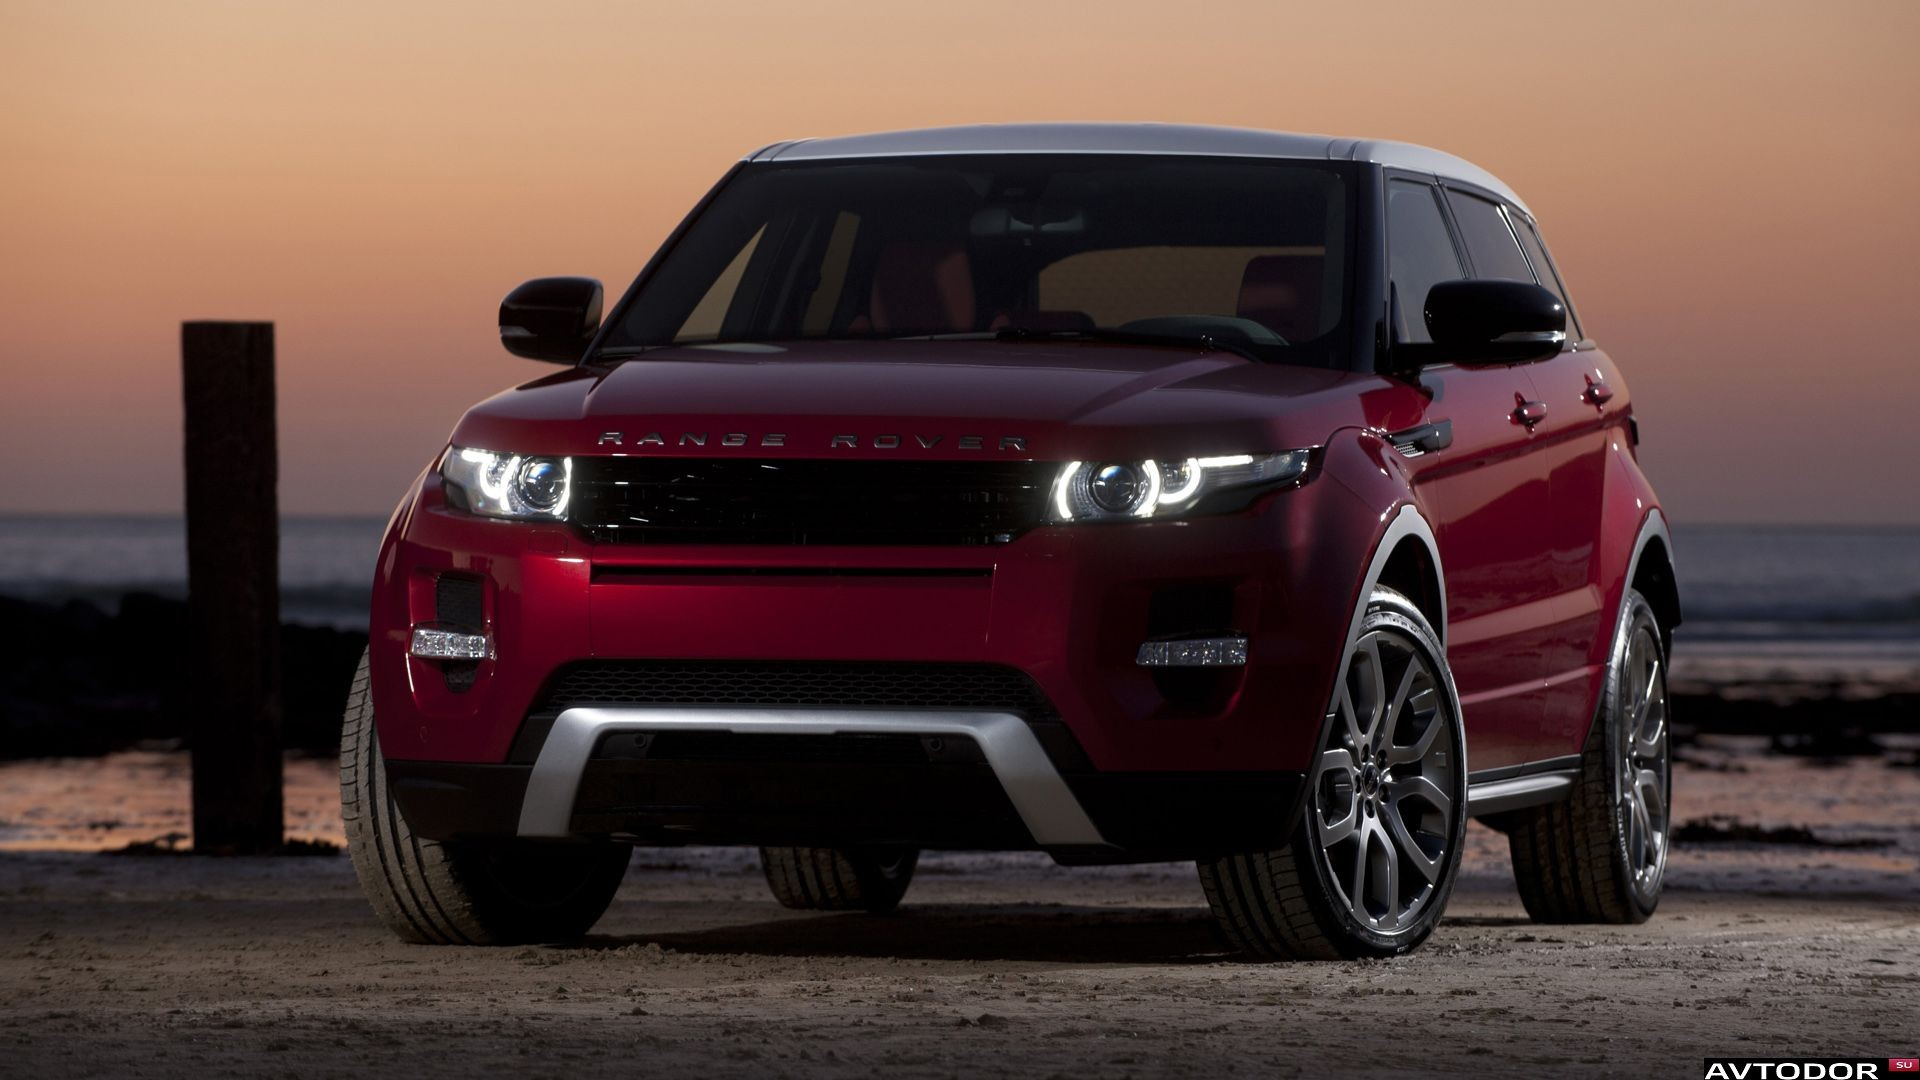 Range Rover Evogue HD Wallpaper